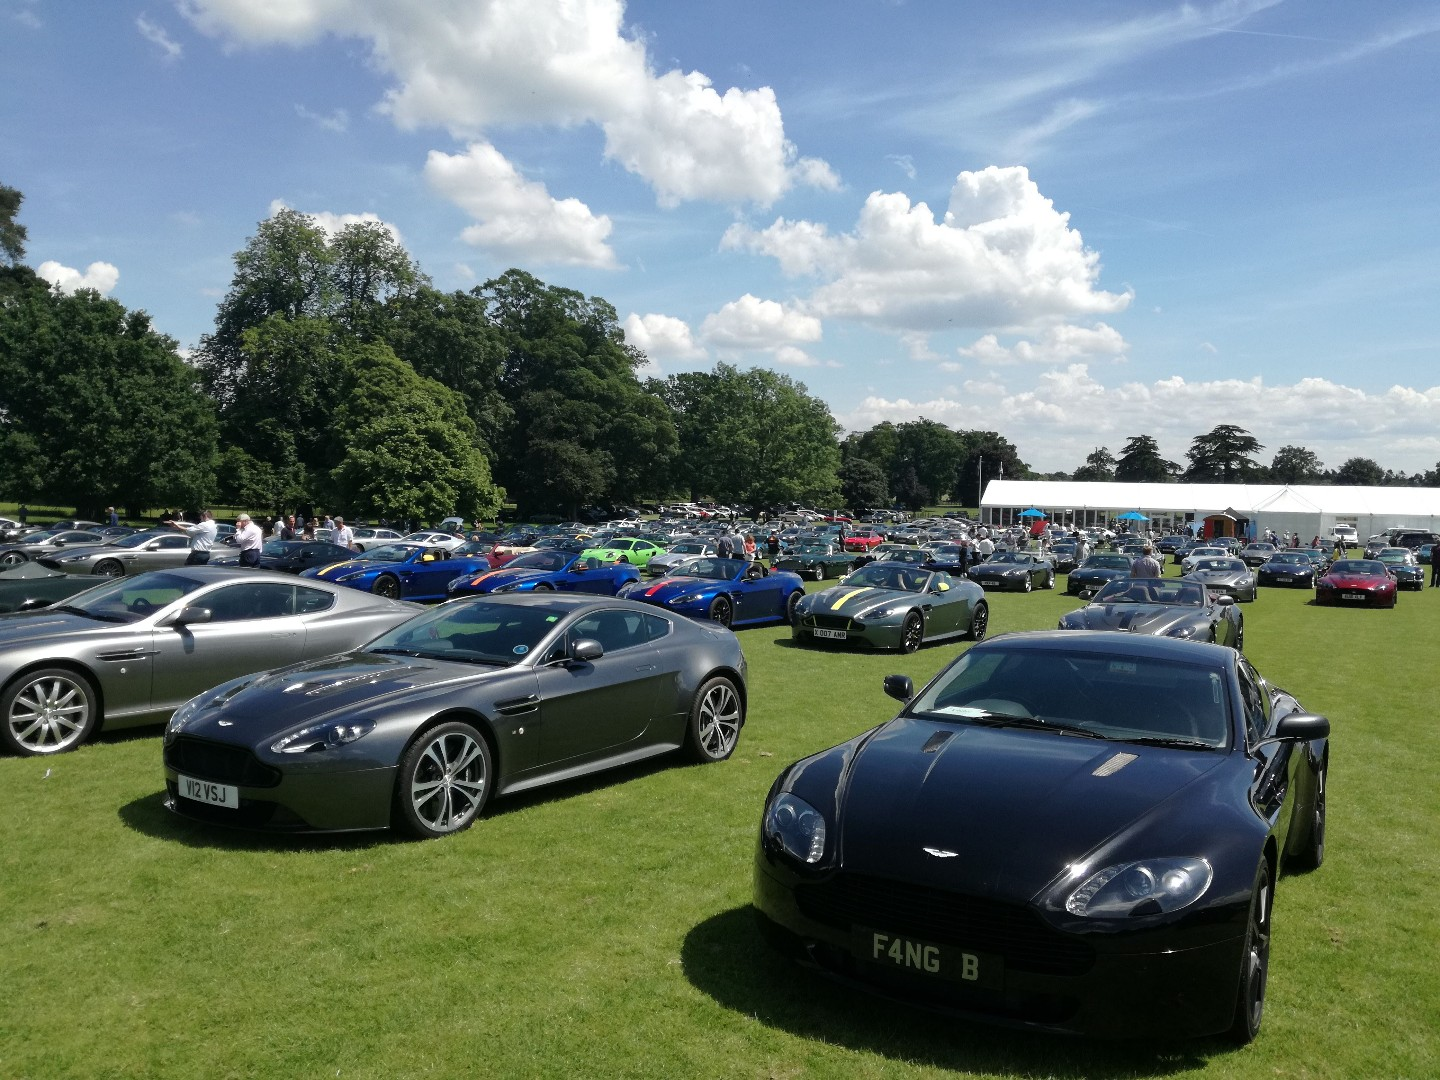 180603_Englefield Concours_Astons2_Tania Reed__130020.jpg